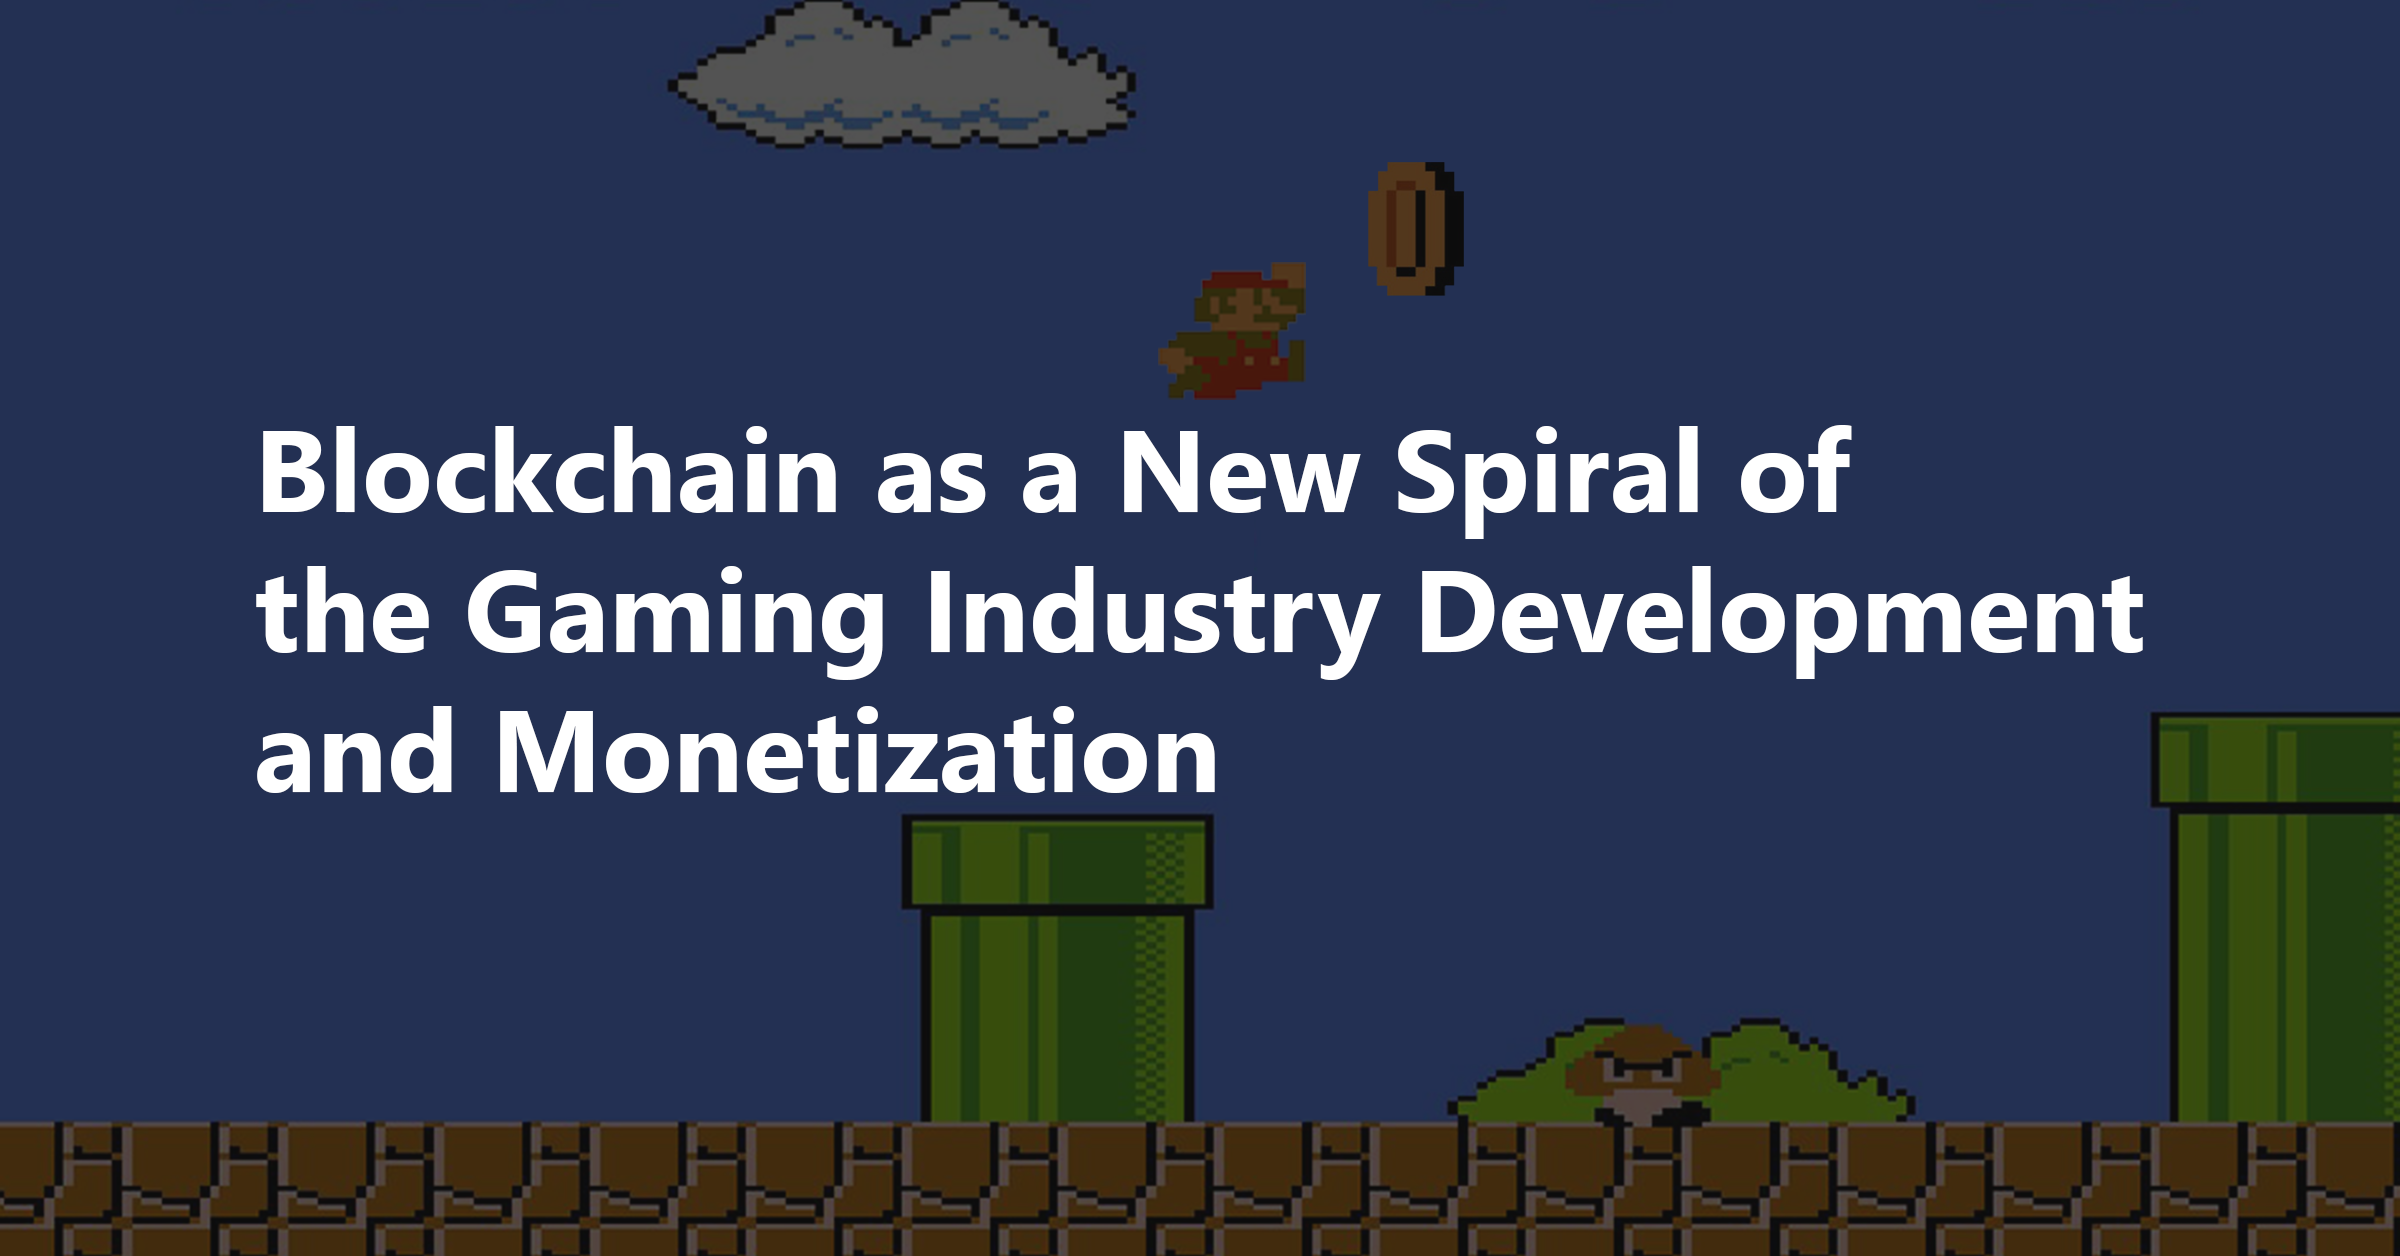 Blockchain as a New Spiral of the Gaming Industry